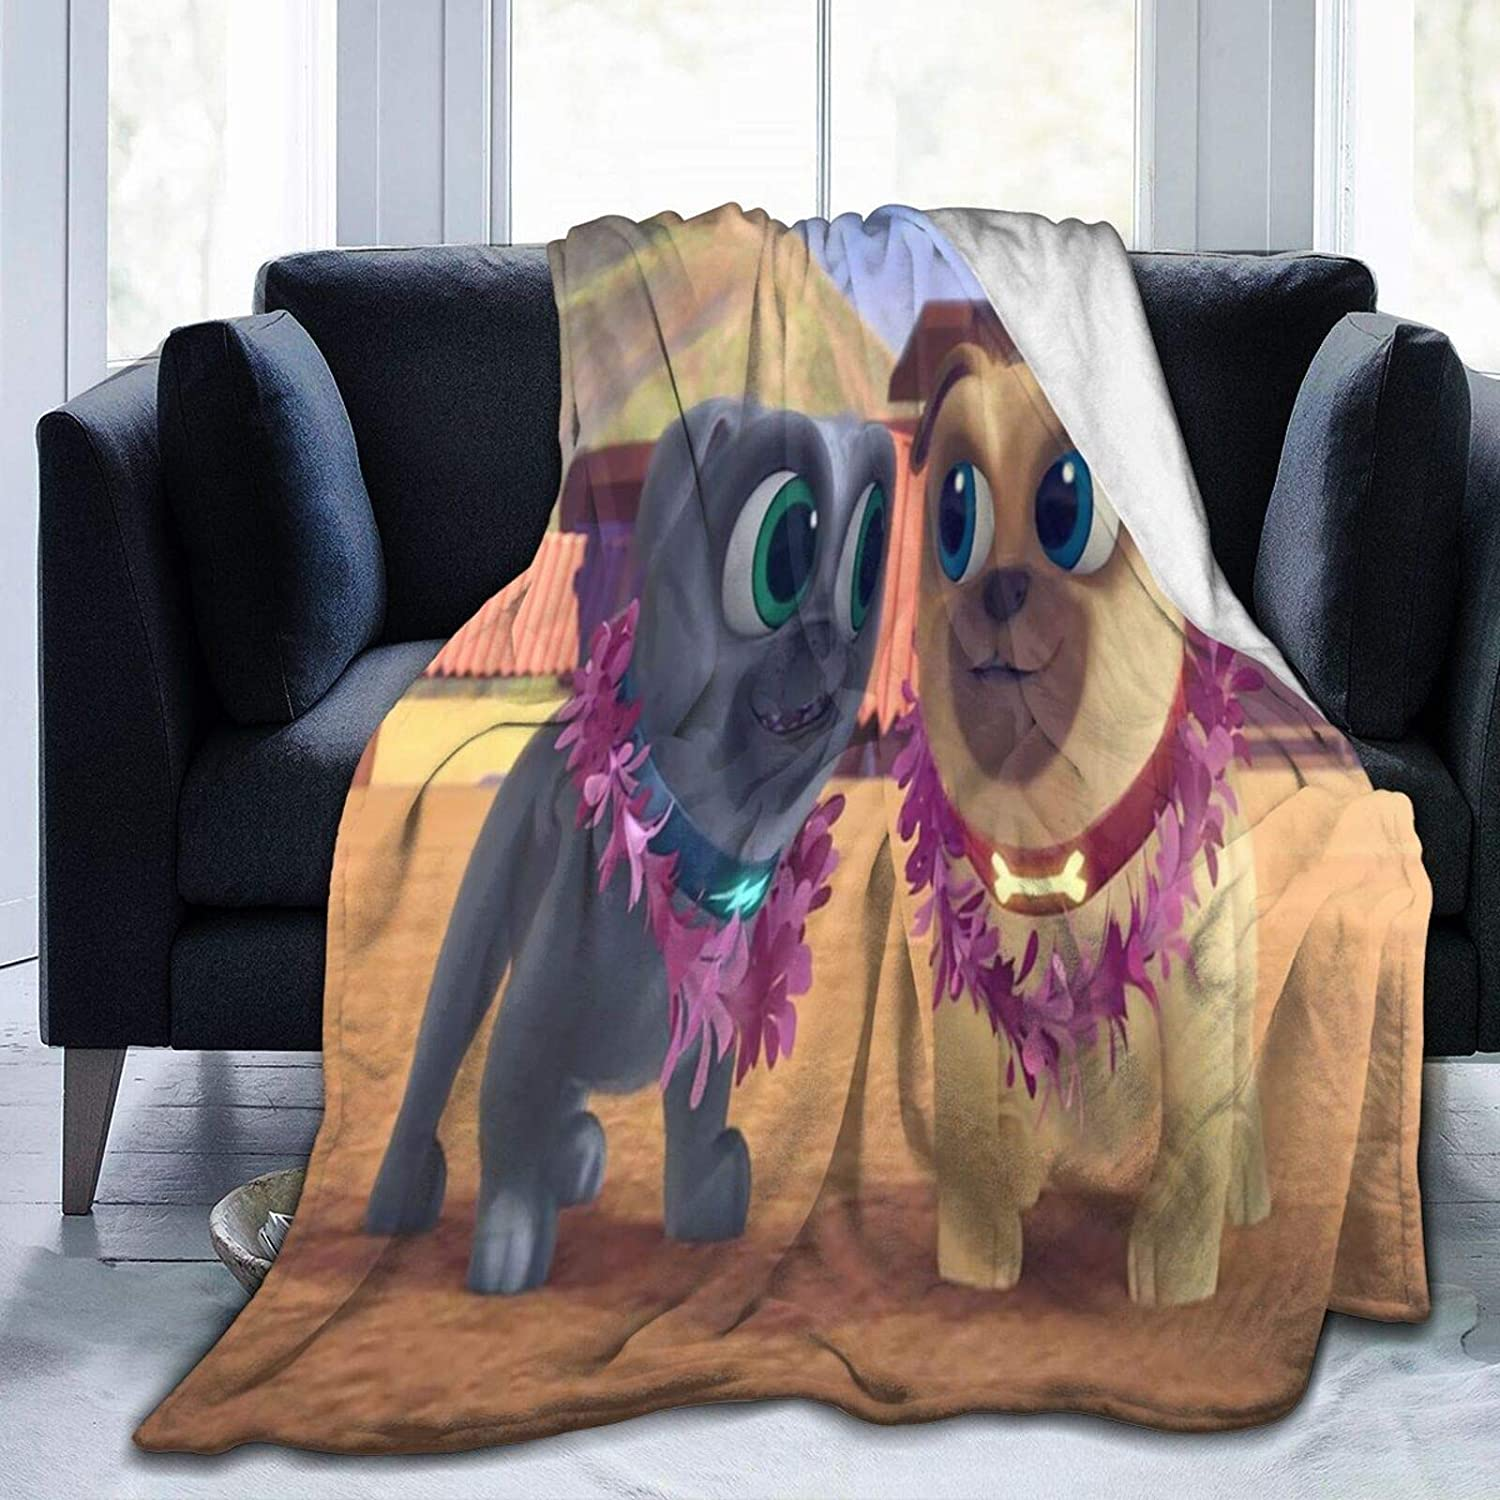 Sarah Scott Puppy Dog Pals Blankets and Air Conditioning Quilt Made of Anti-Pilling Fleece That are Soft to Travel Anywhere Comfortable,50